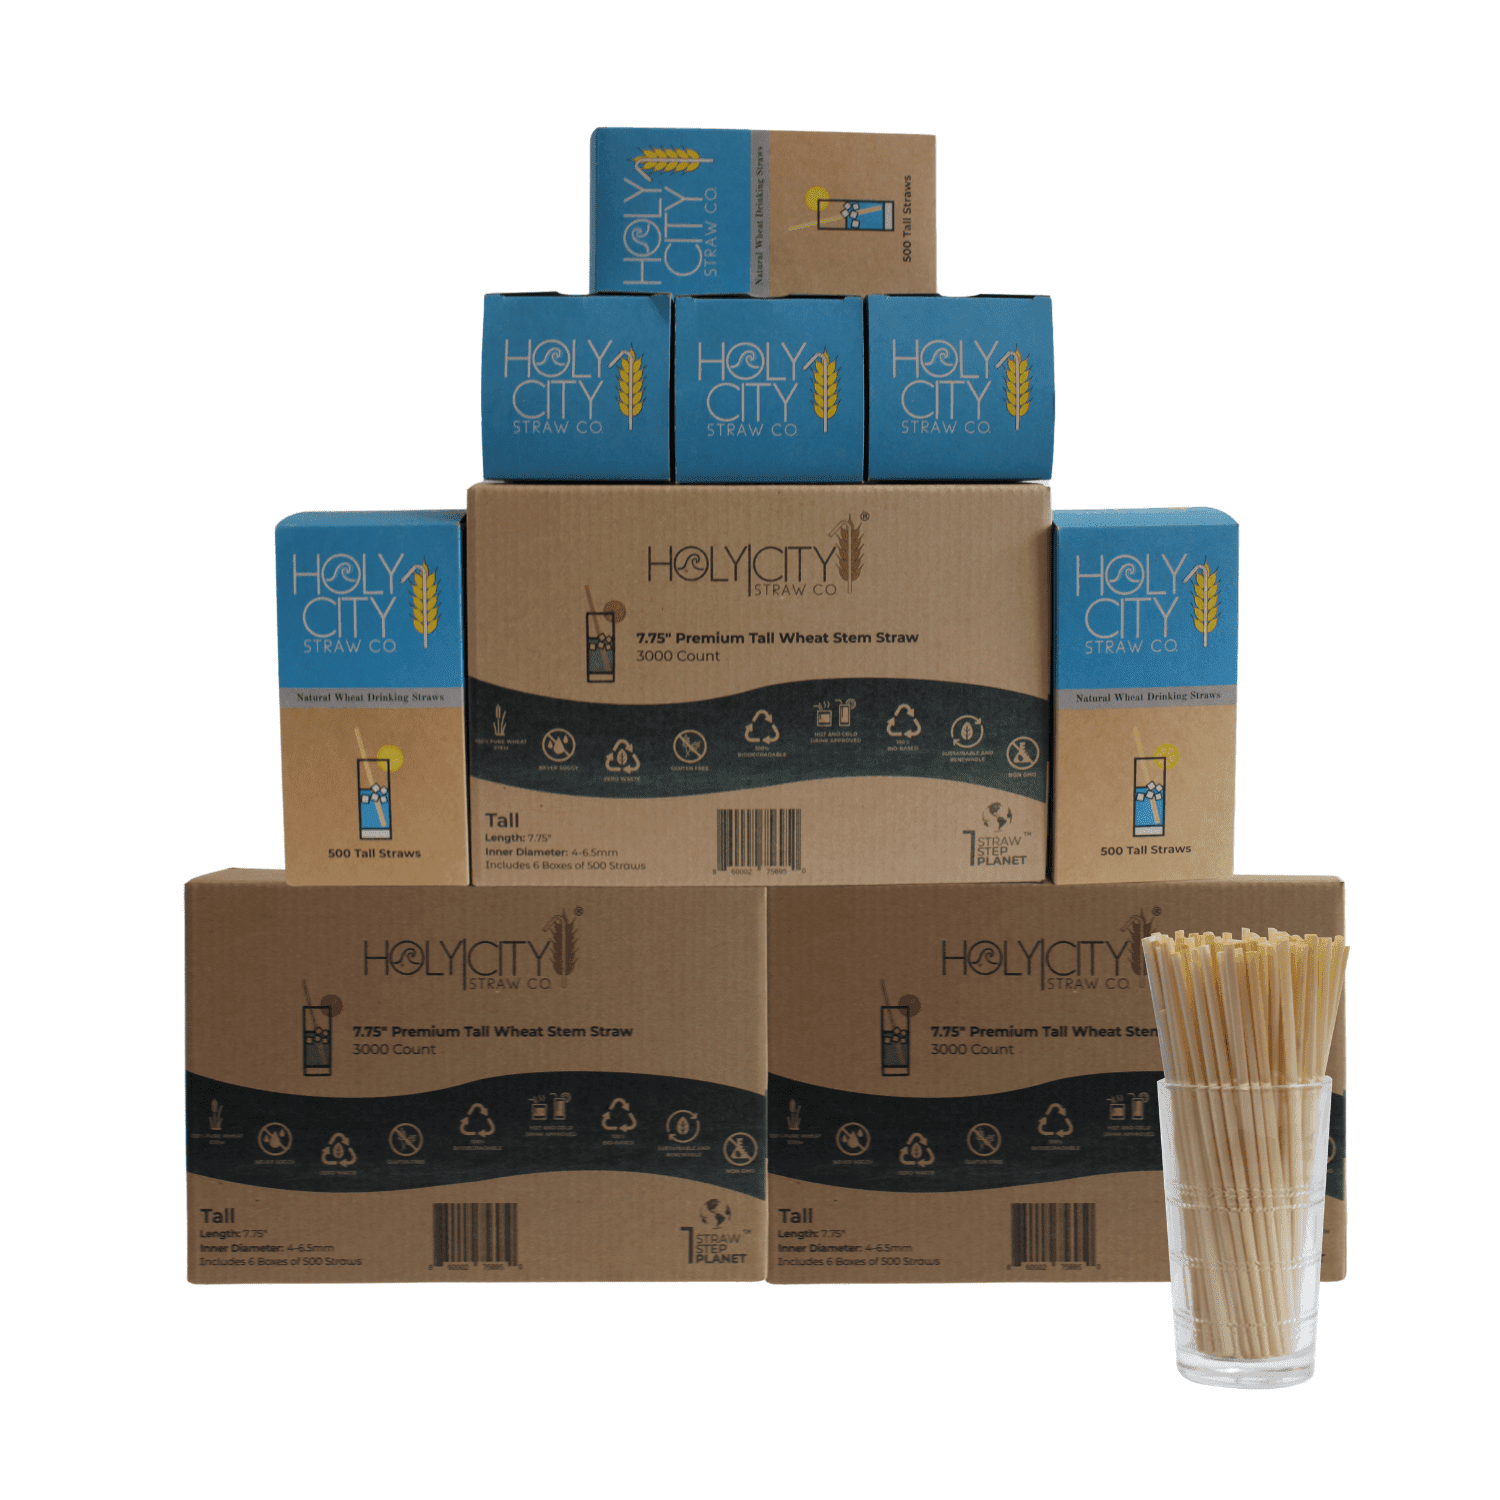 9000 count super case containing 18 boxes of 500 count boxes of Holy City Tall Wheat Straws